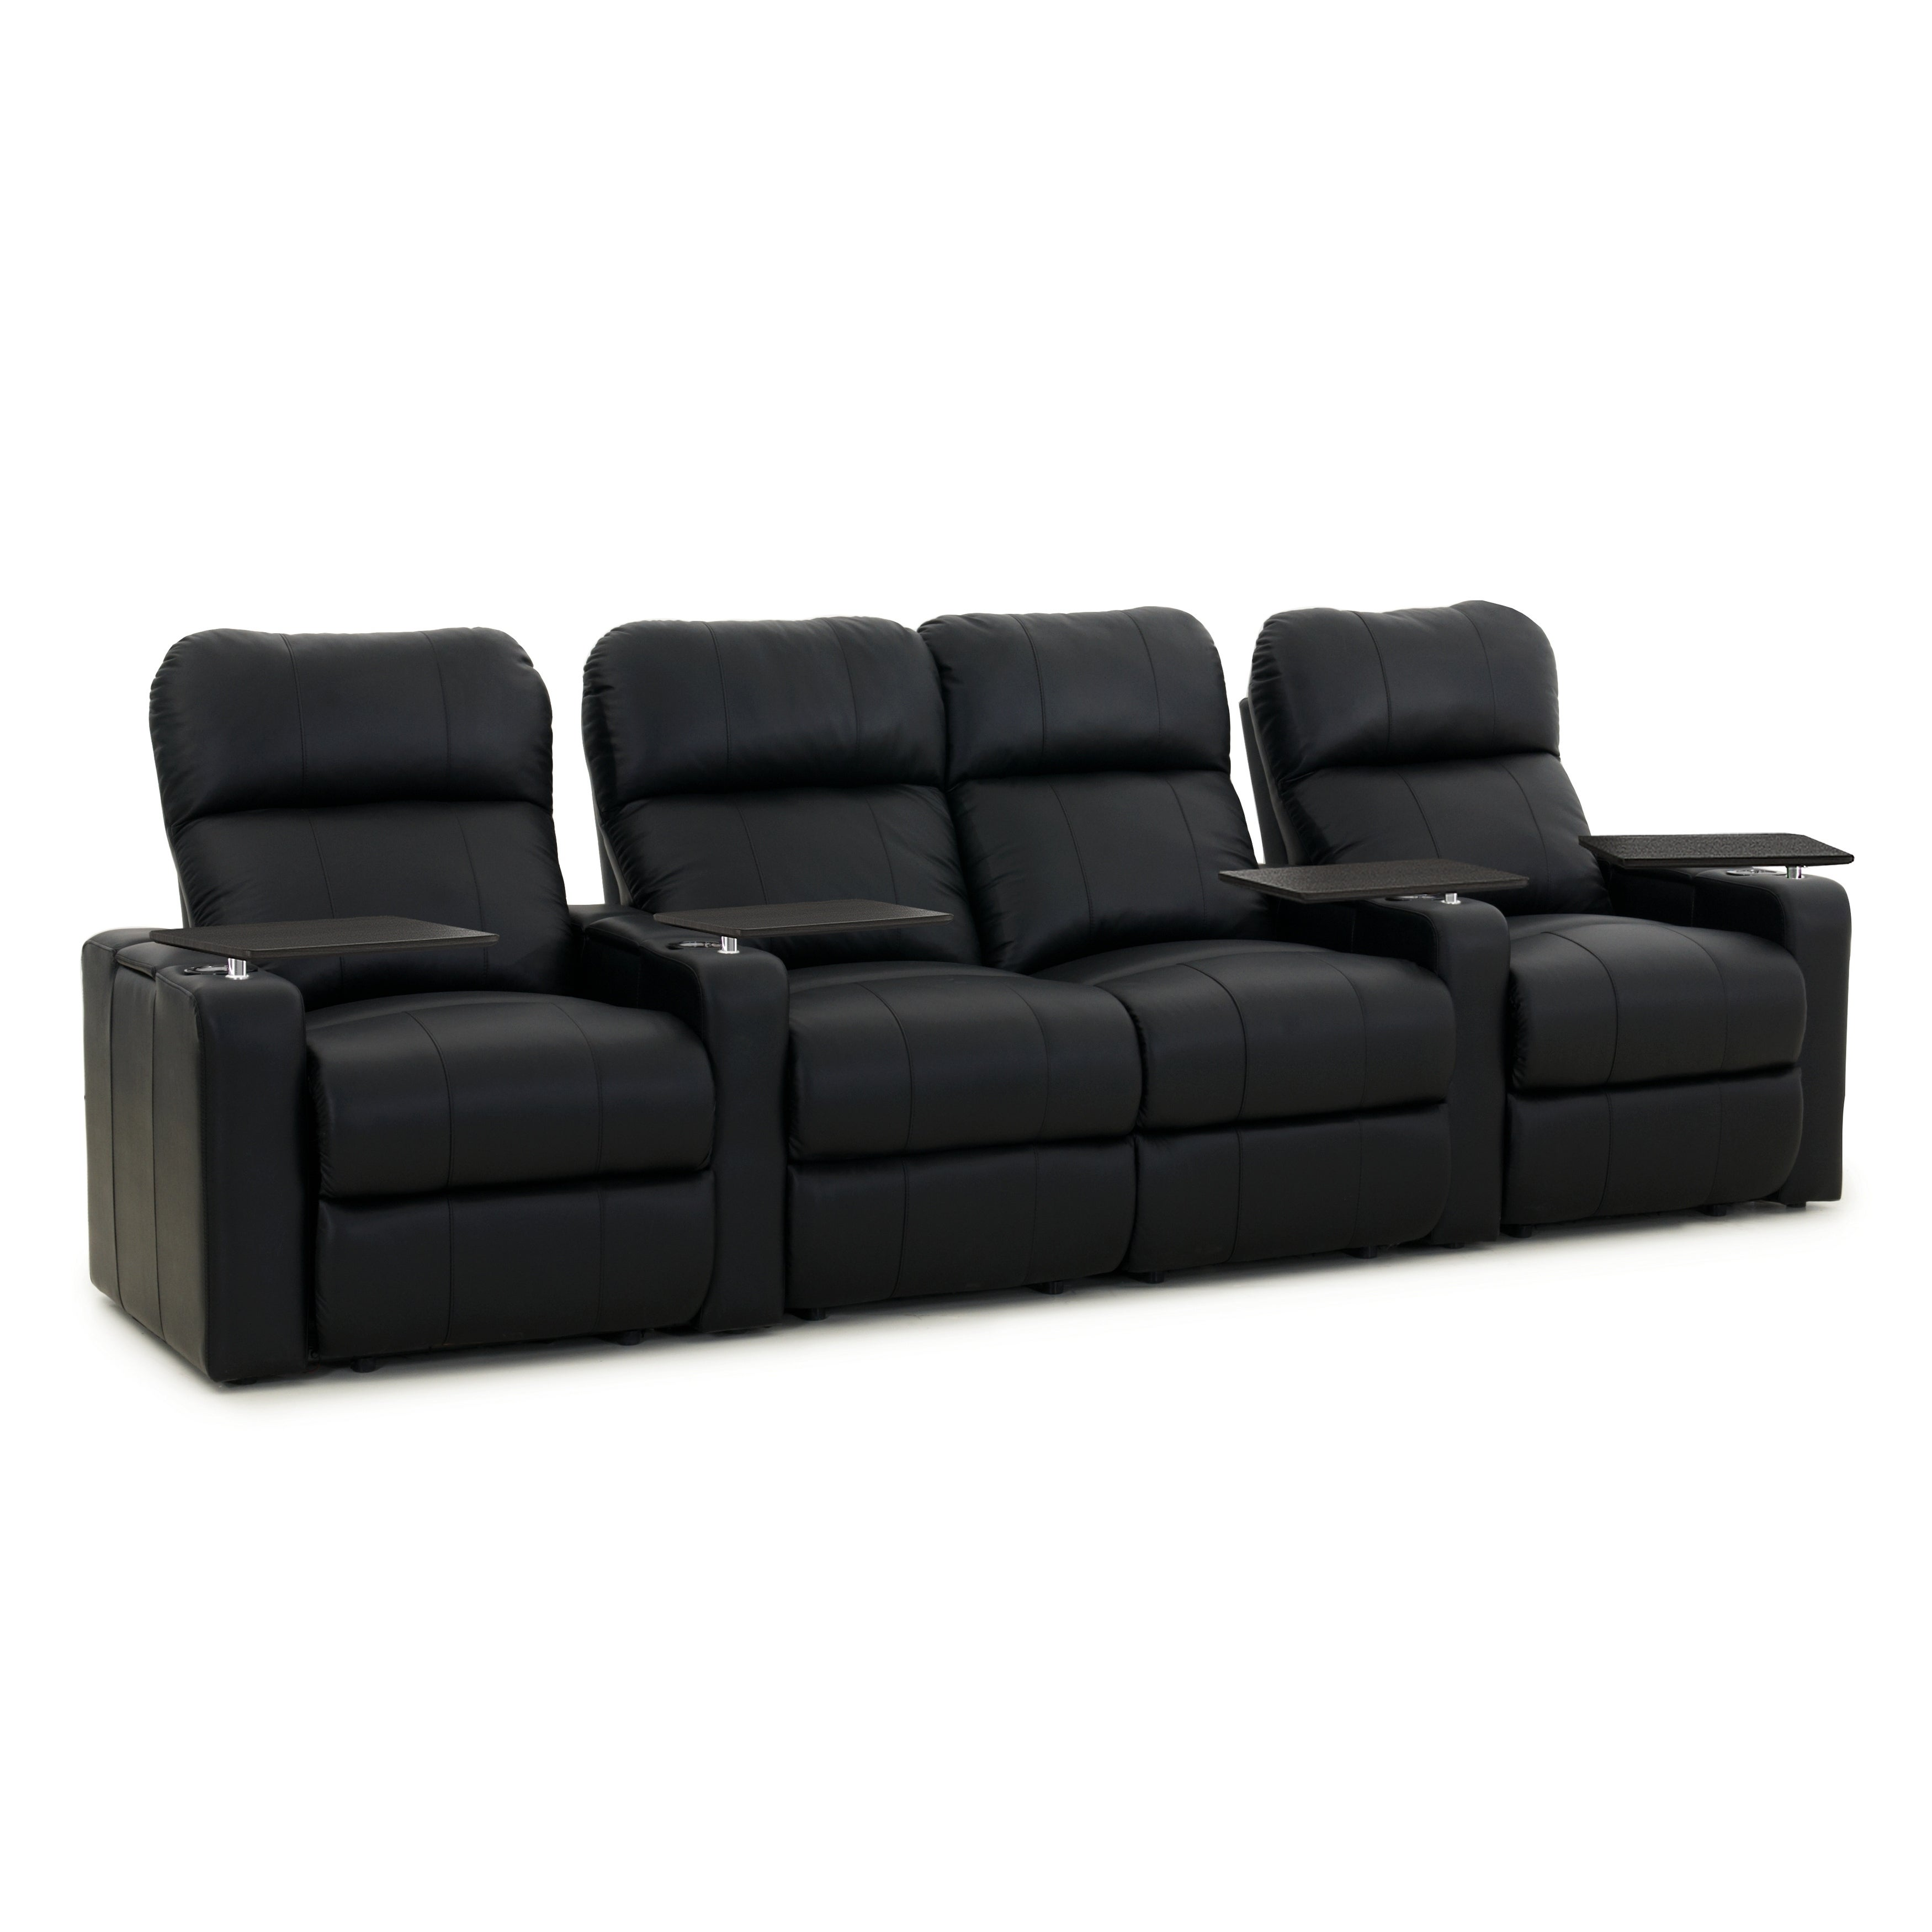 Octane Turbo XL700 Manual Leather Home Theater Seating Se...